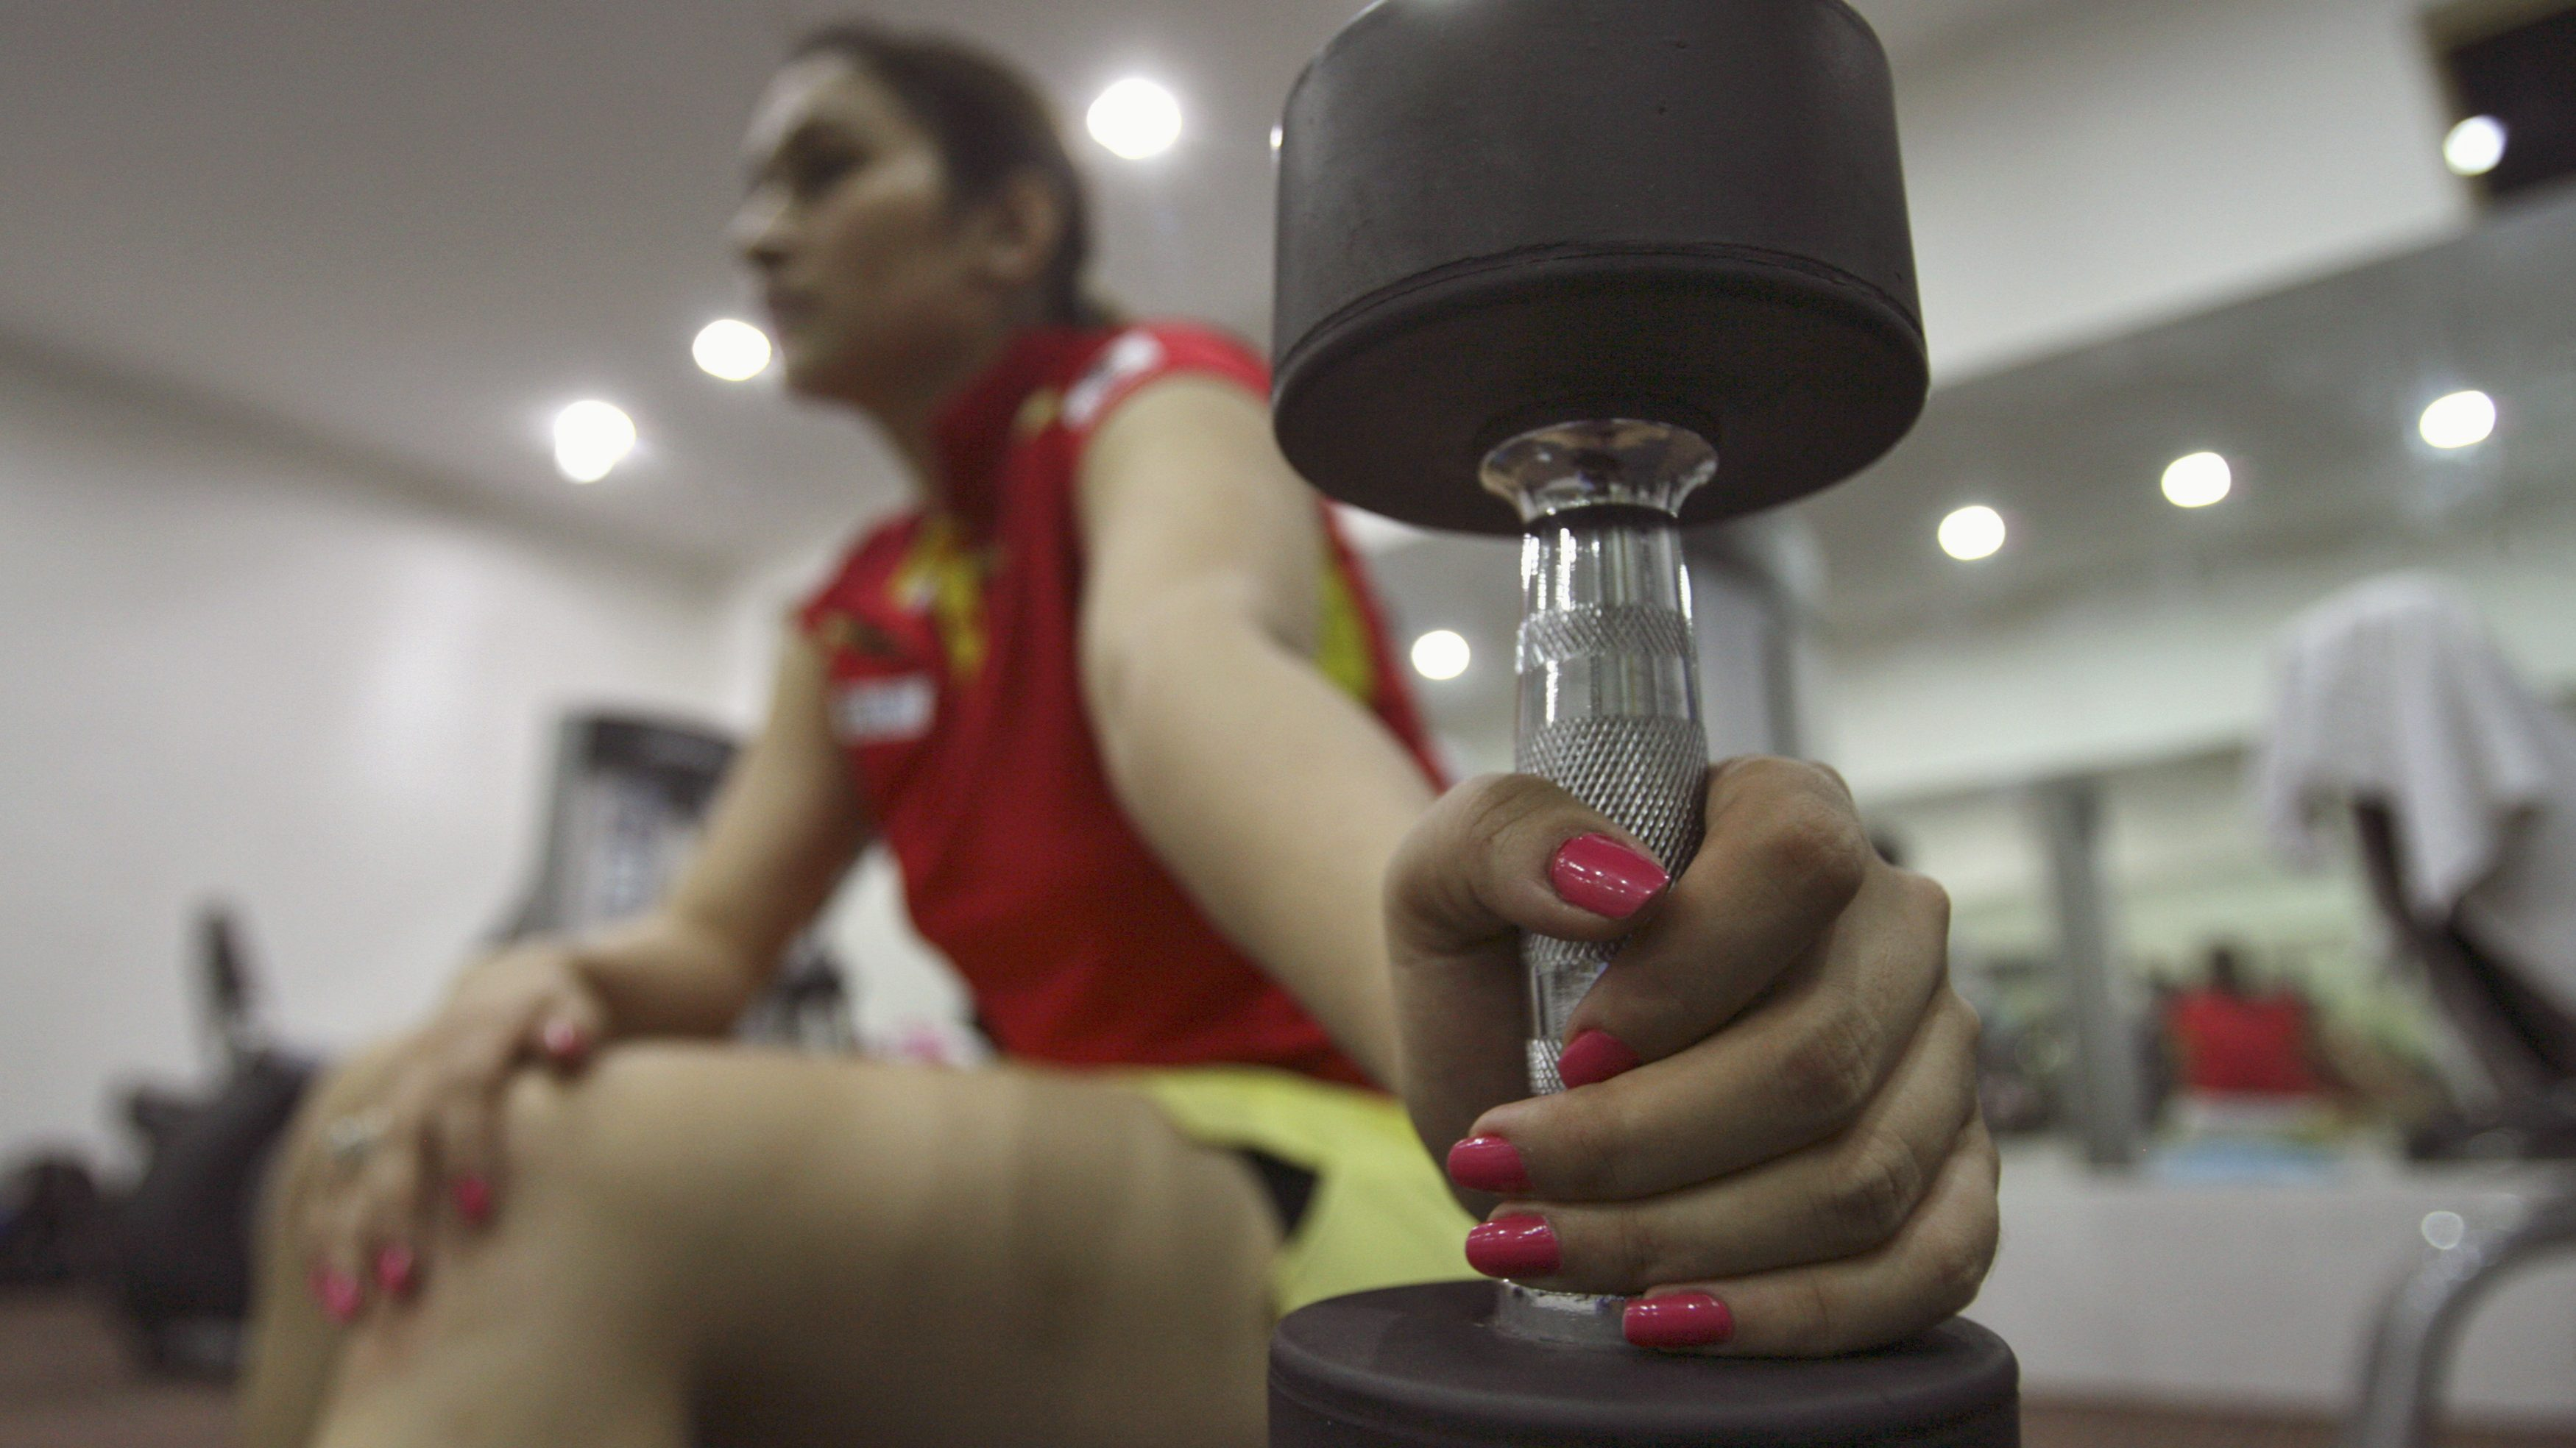 India's badminton player Jwala Gutta holds a dumbbell while taking a break during her exercise at a gym before a practice session in preparation for the London Olympics, in the southern Indian city of Hyderabad July 12, 2012. Gutta thinks it may take India 100 years to emulate China's sporting success but the badminton doubles specialist hopes to bring her country a step closer to that goal by earning a medal at the London Olympics. To match Interview OLY-BADM-INDIA-GUTTA-ADV11/ Picture taken July 12, 2012. REUTERS/Krishnendu Halder (INDIA - Tags: SPORT BADMINTON OLYMPICS) - GM1E87G1EYA01